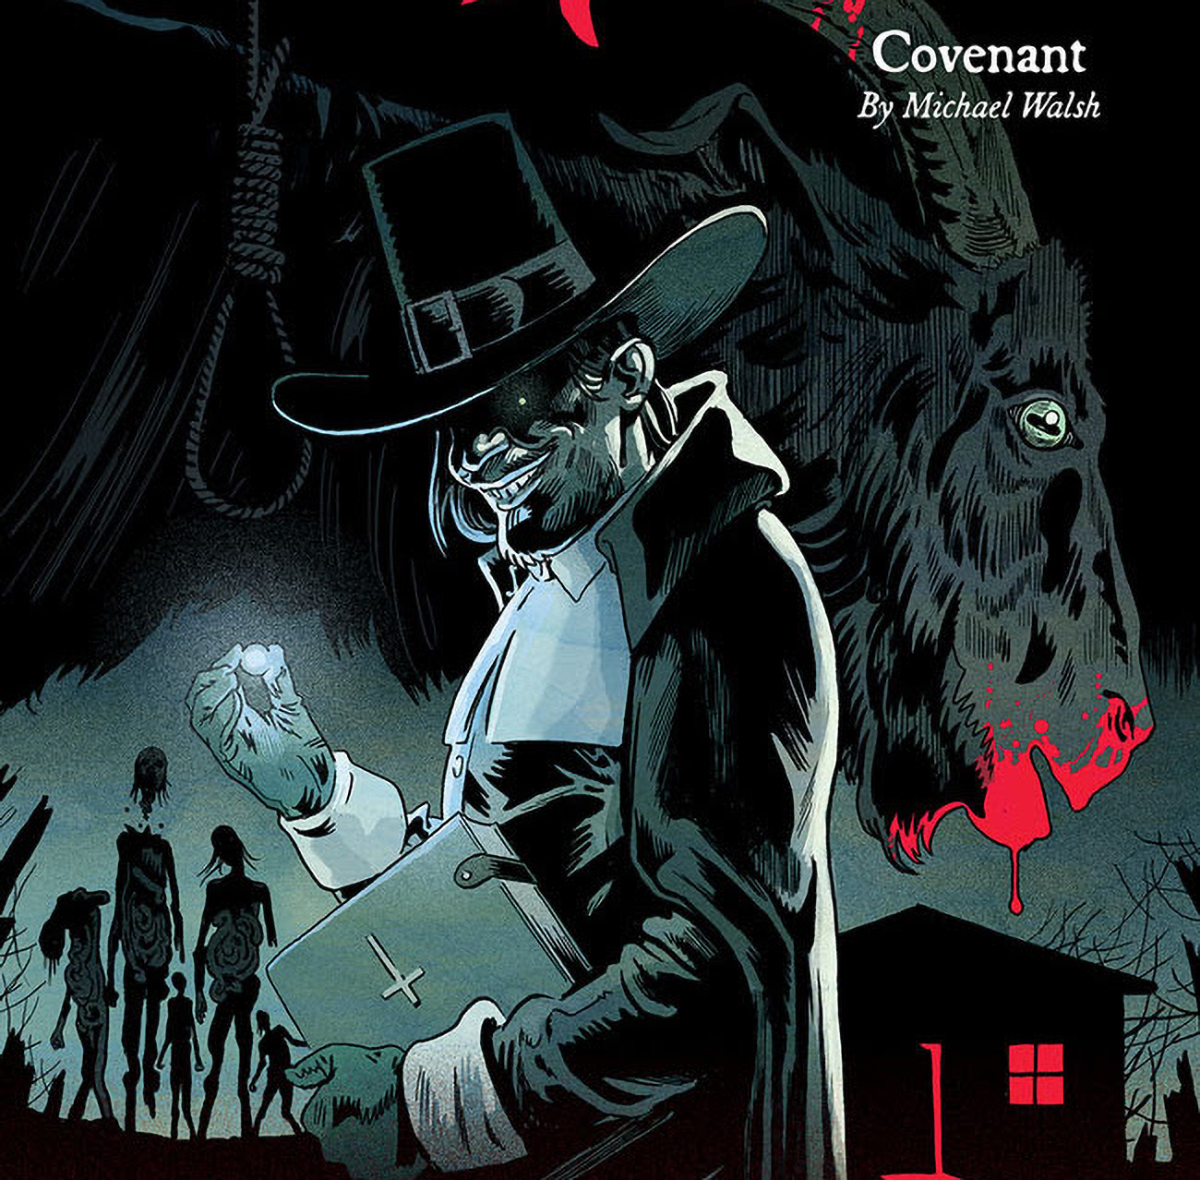 'The Silver Coin' #5 offers moody horror